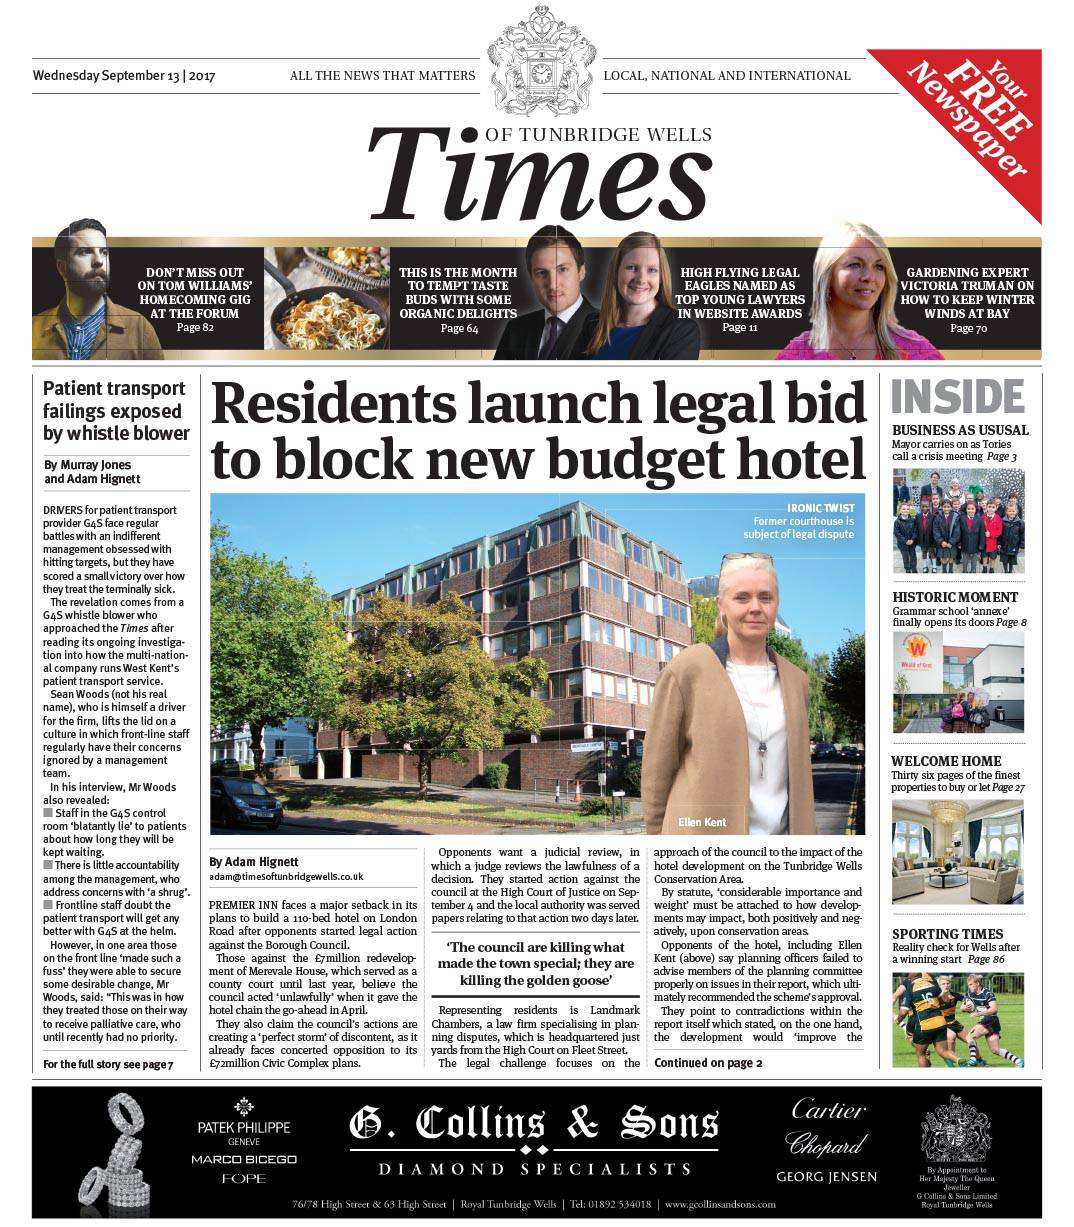 Read the Times of Tunbridge Wells 13th September 2017